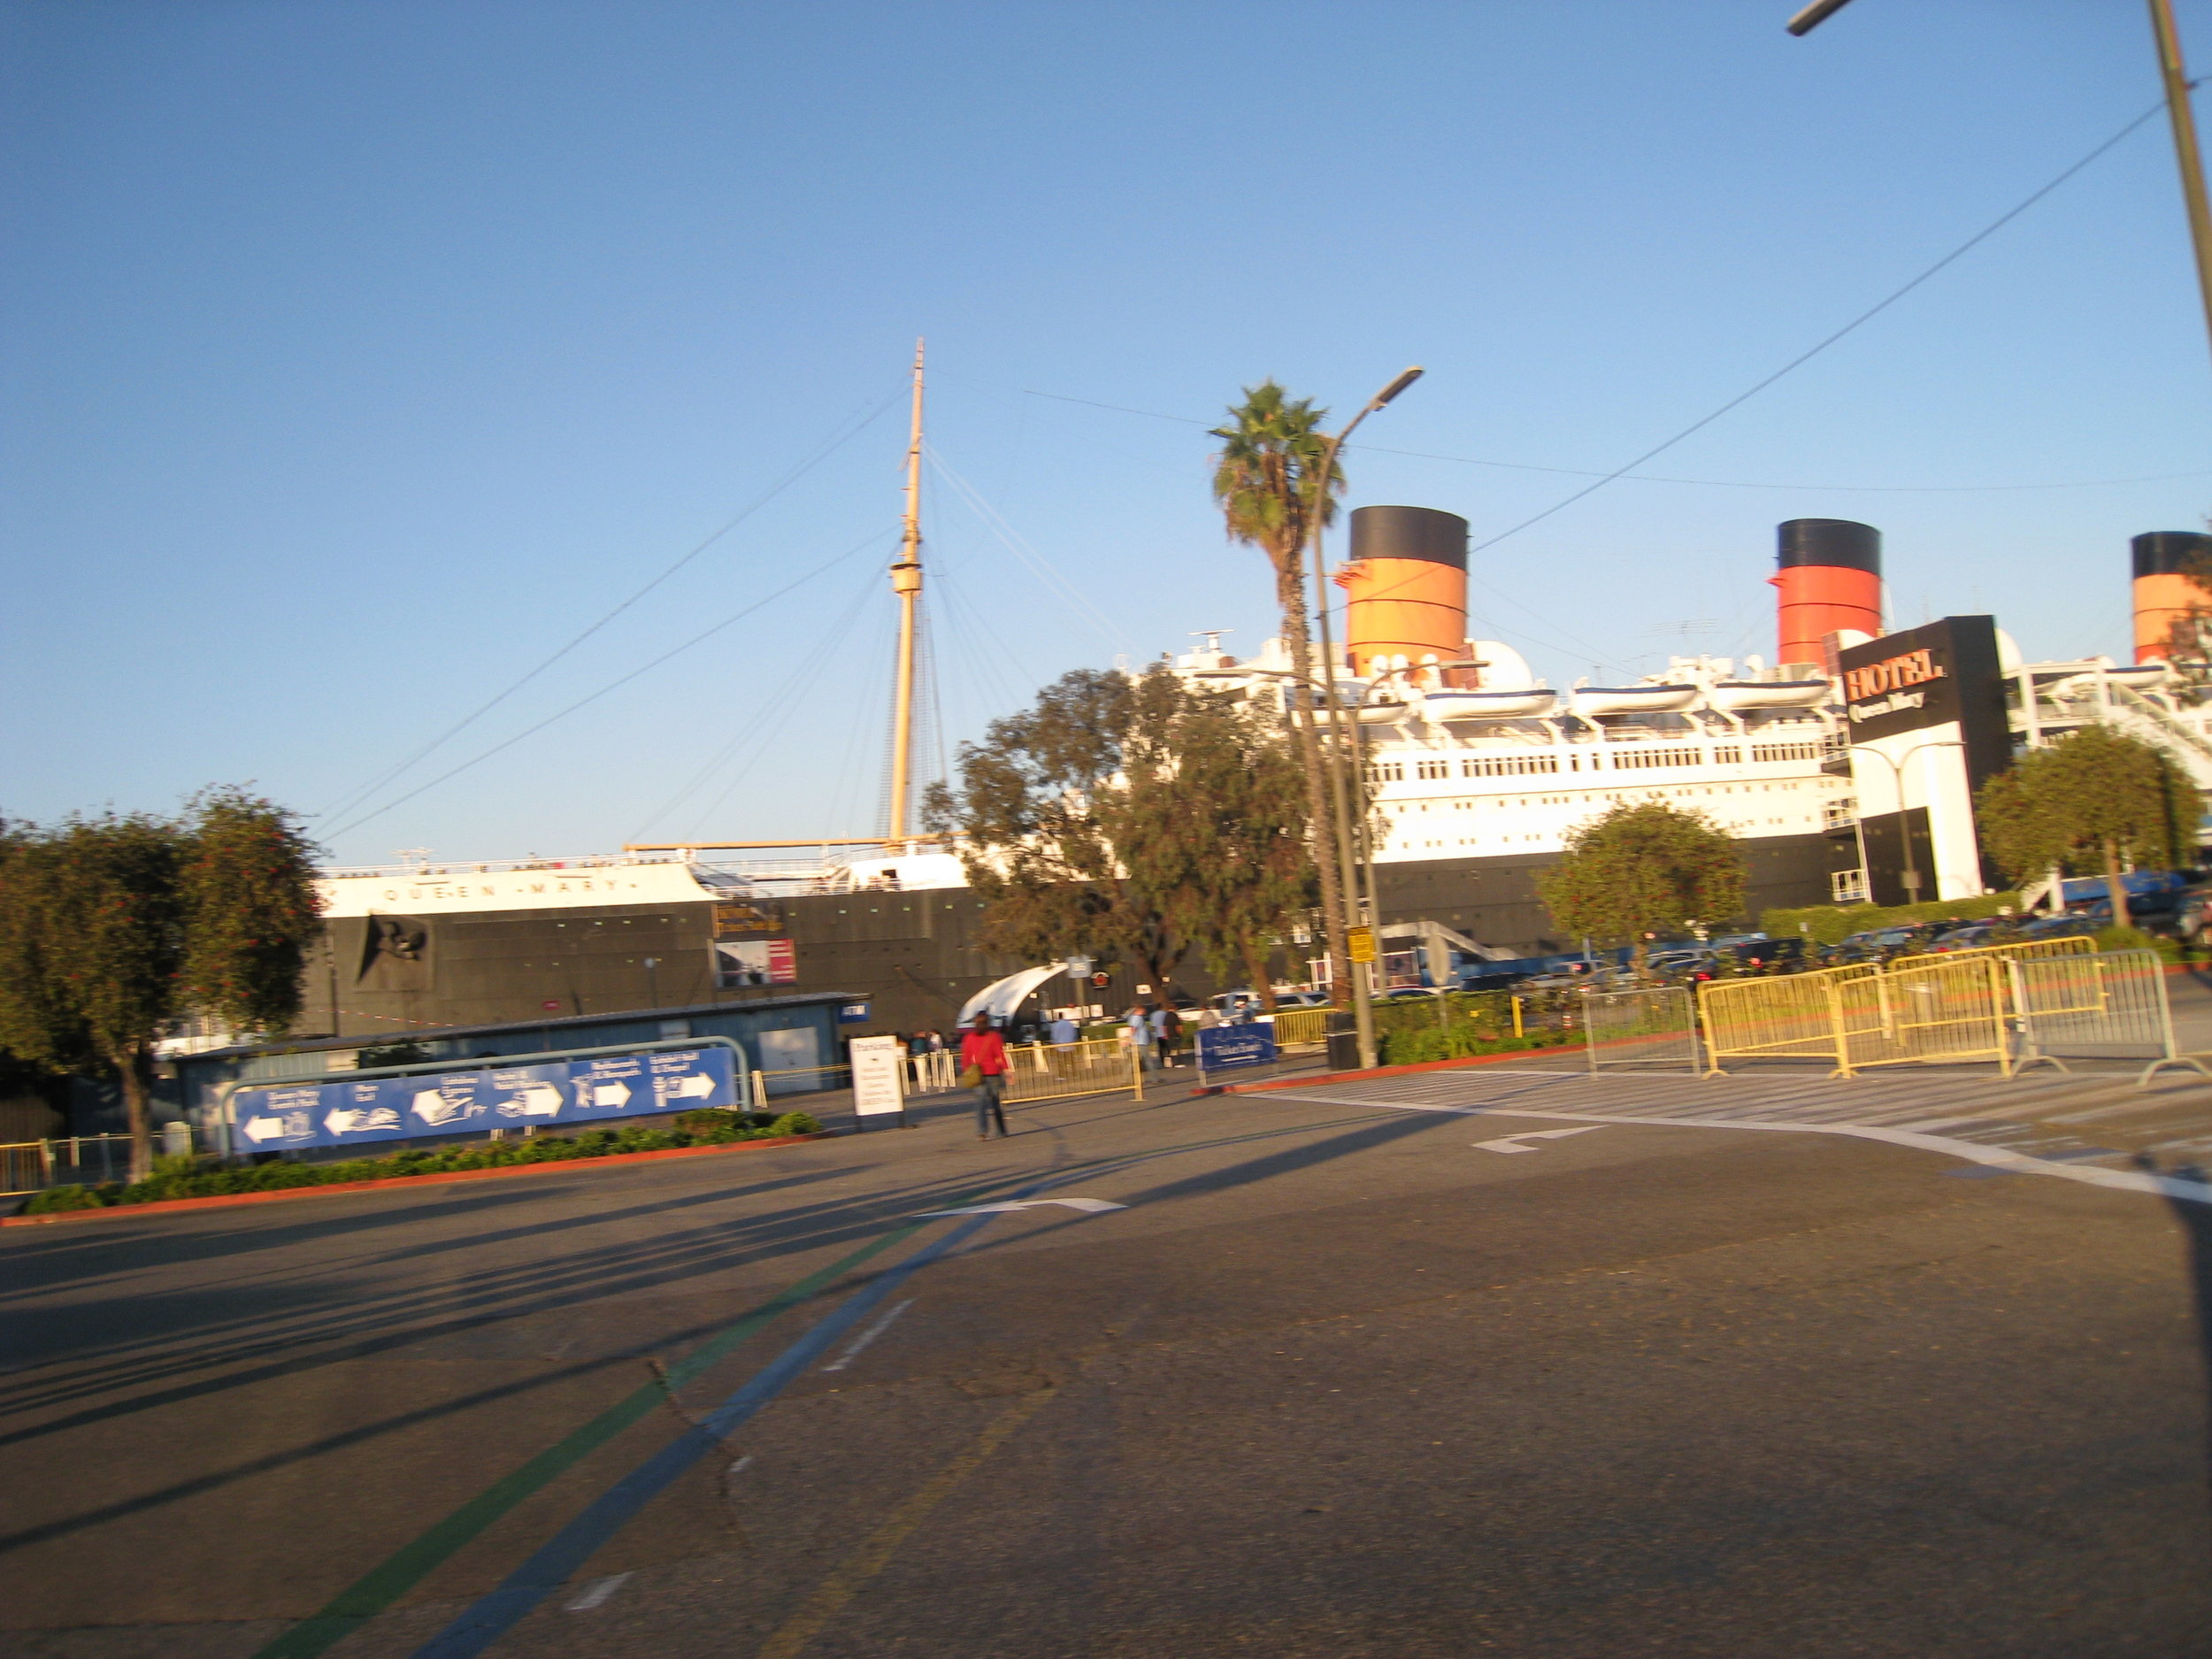 Queen Mary and Furniture 083.jpg